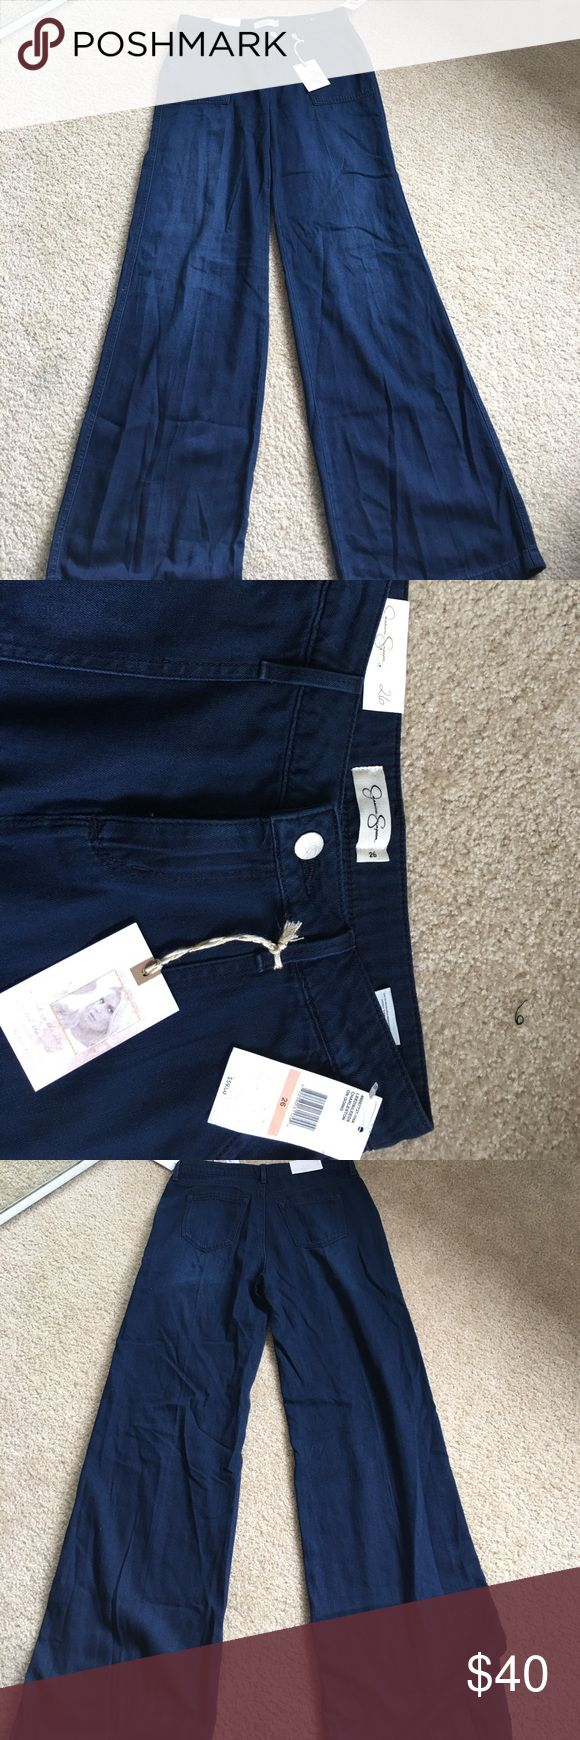 Jessica Simpson Jeans⬇️⬇️FINAL MARKDOWN⬇️⬇️ Brand new. I haven't been able to fit into these. So they have to go. Super dark blue and wide Leg. Size is 26 and they sit high on the waist. Very flattering. Jessica Simpson Jeans Flare & Wide Leg